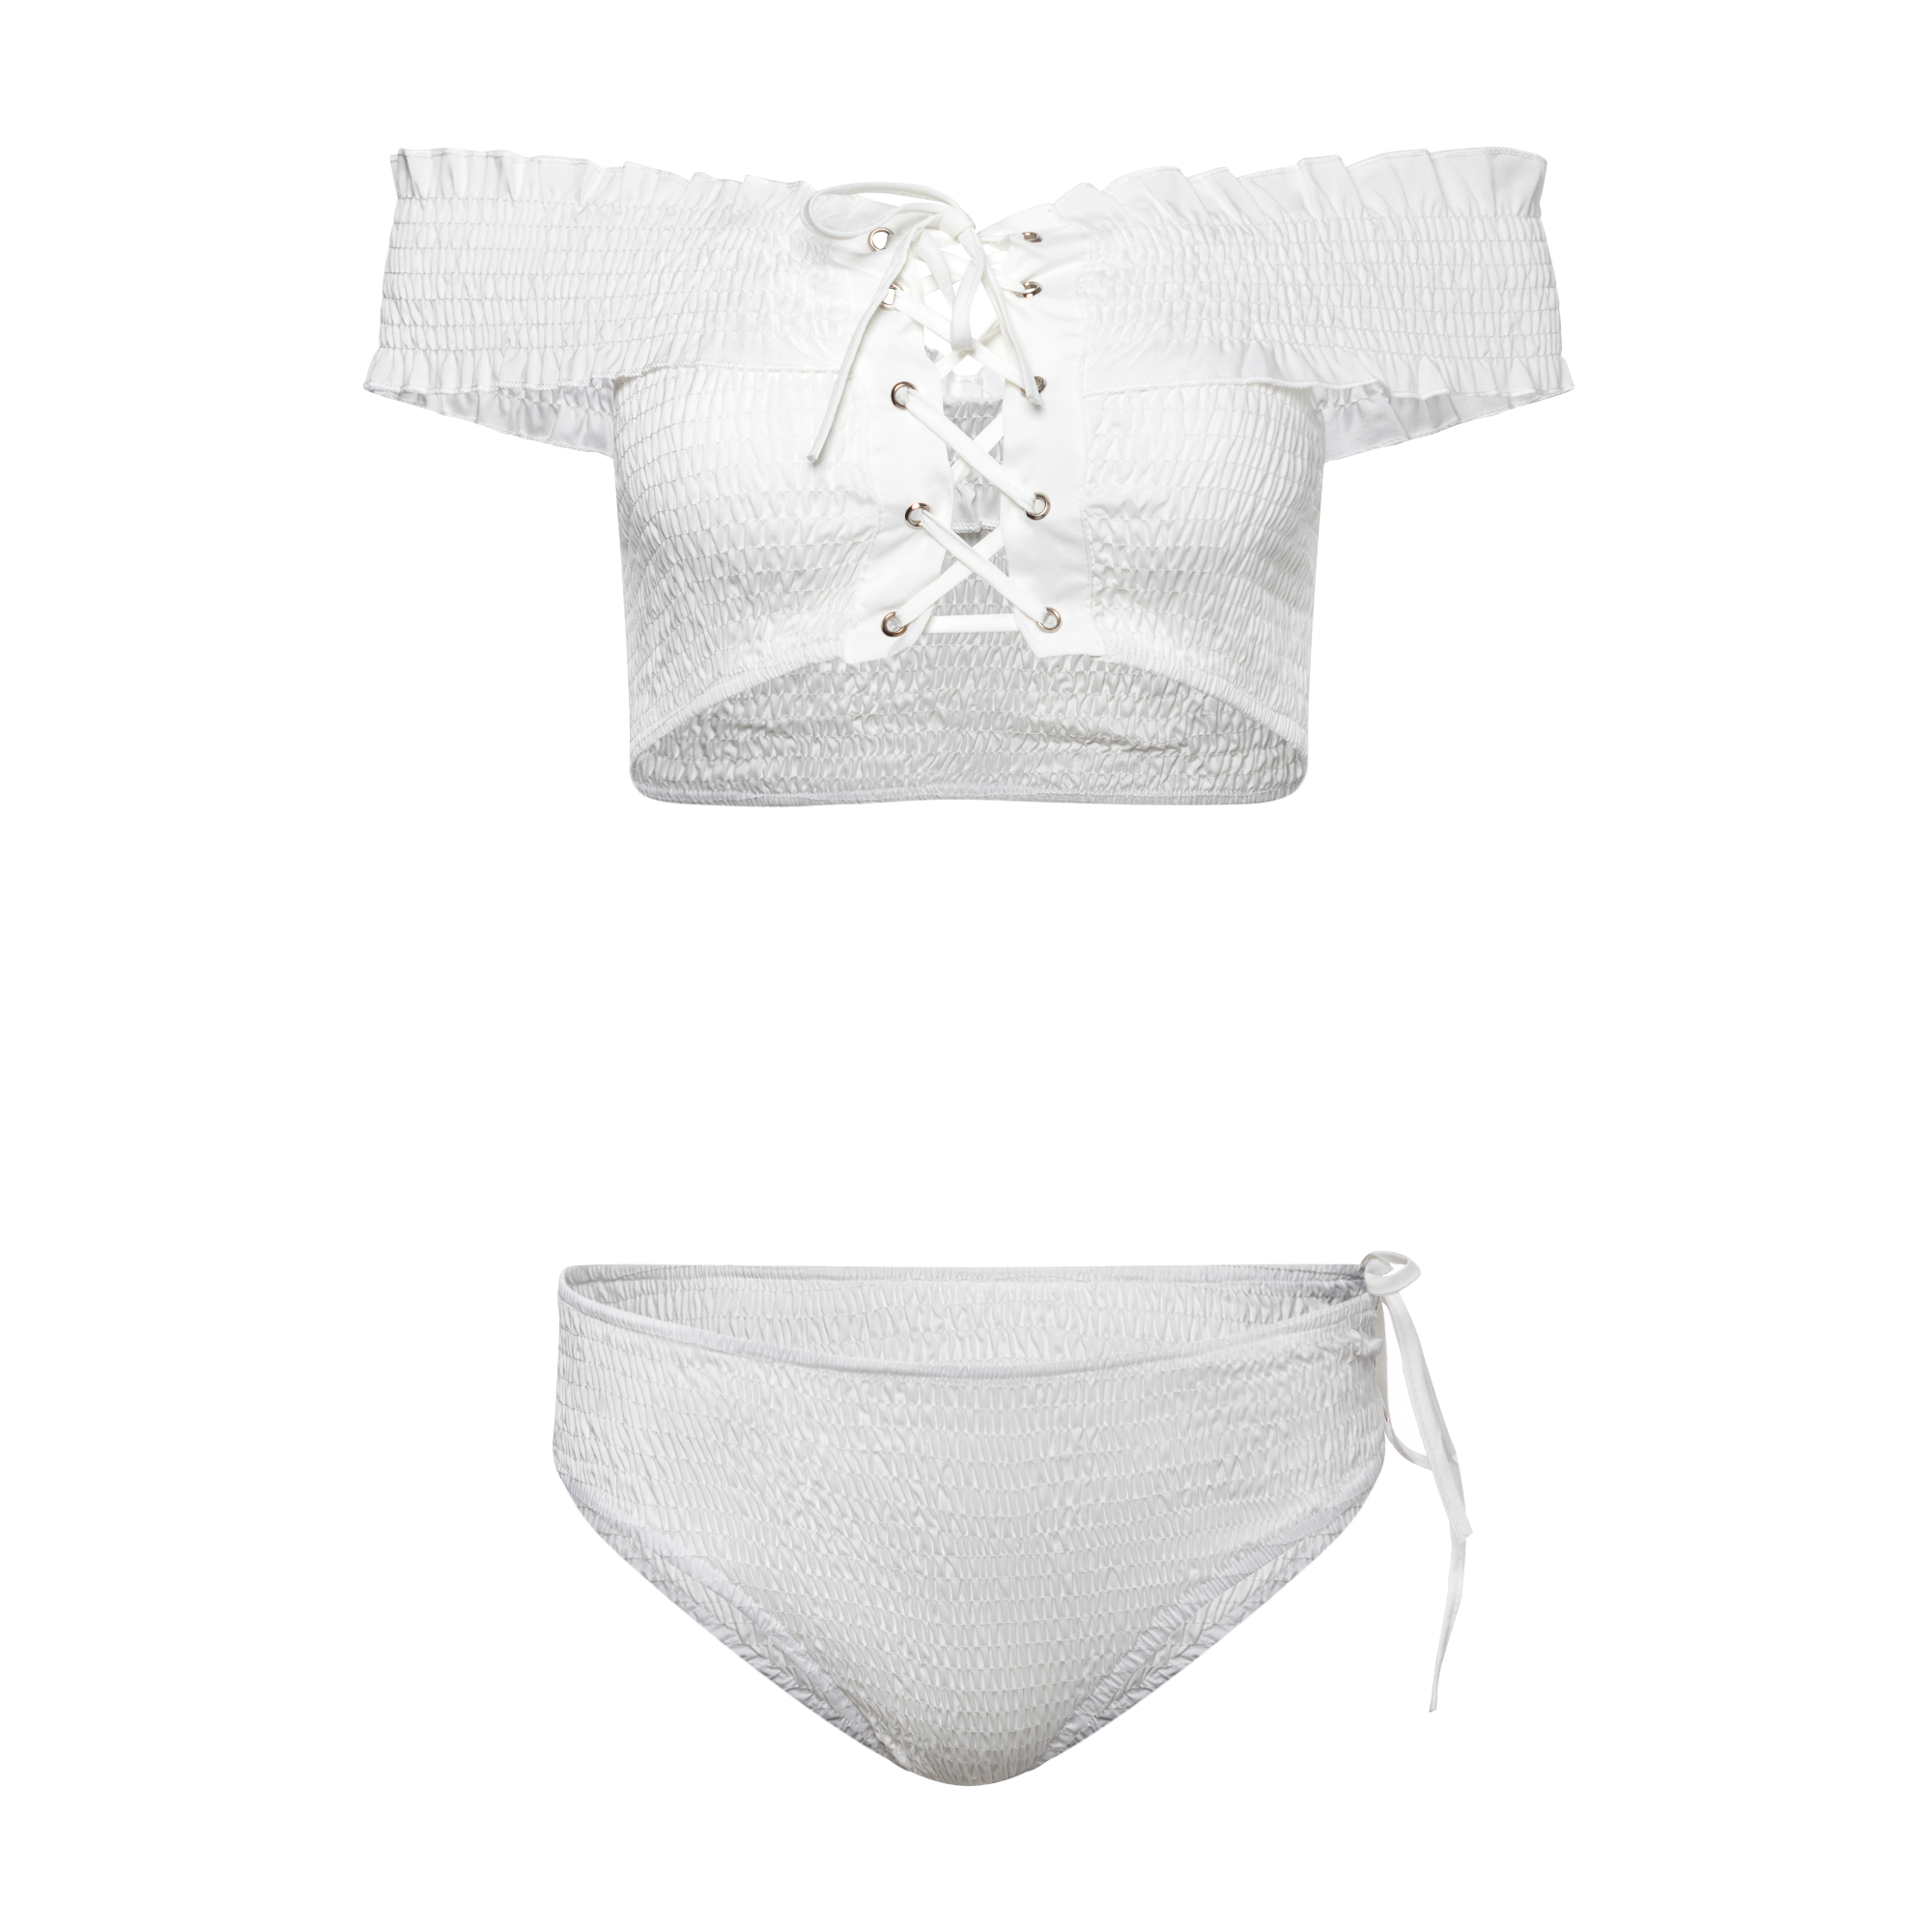 Underwear product photography